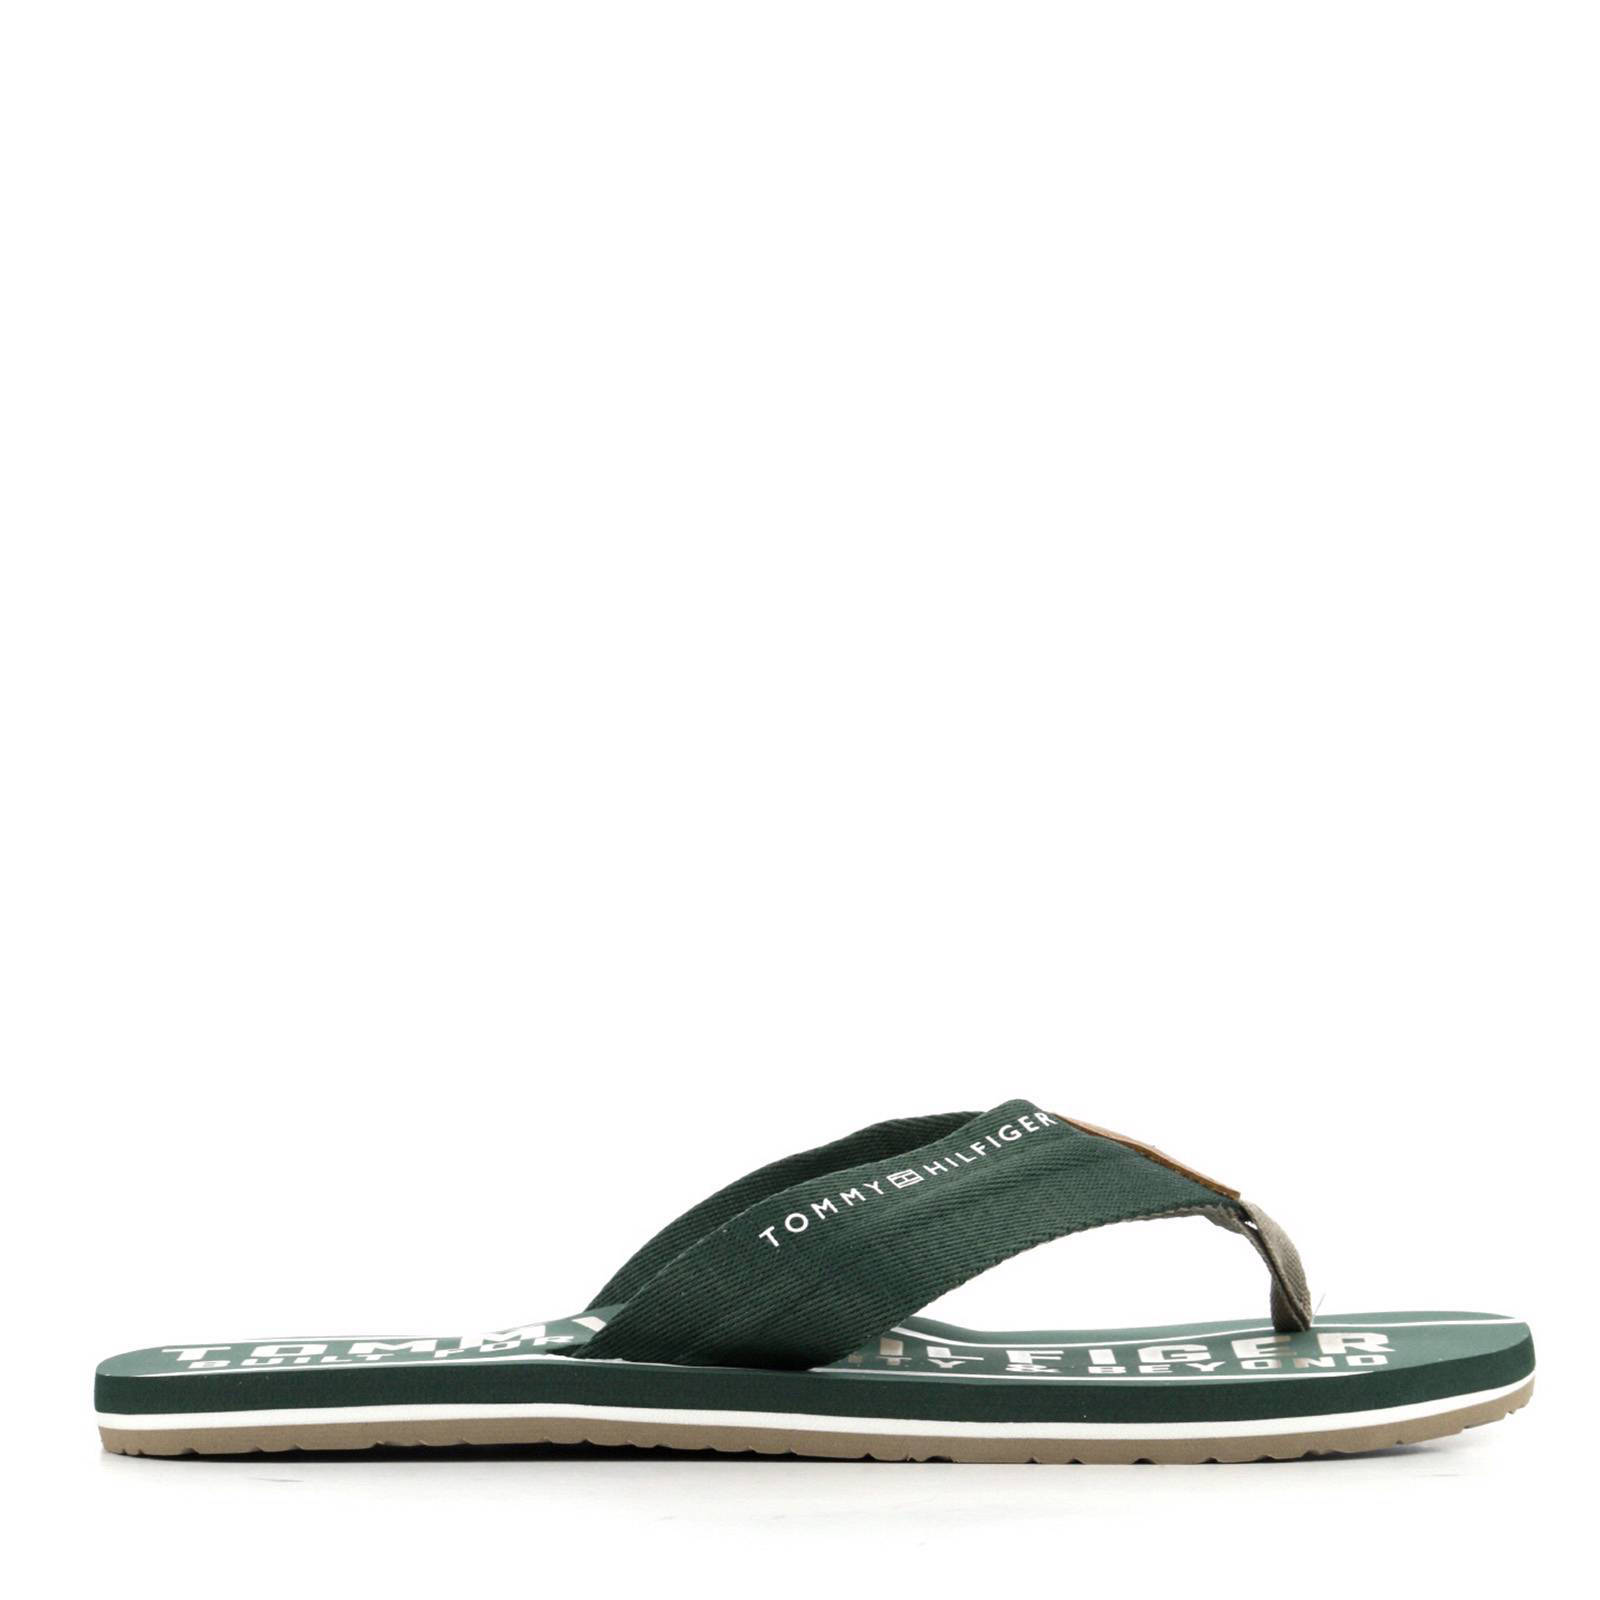 a696a61185ab46 Tommy Hilfiger Smart TH Beach Sandal teenslippers groen | wehkamp